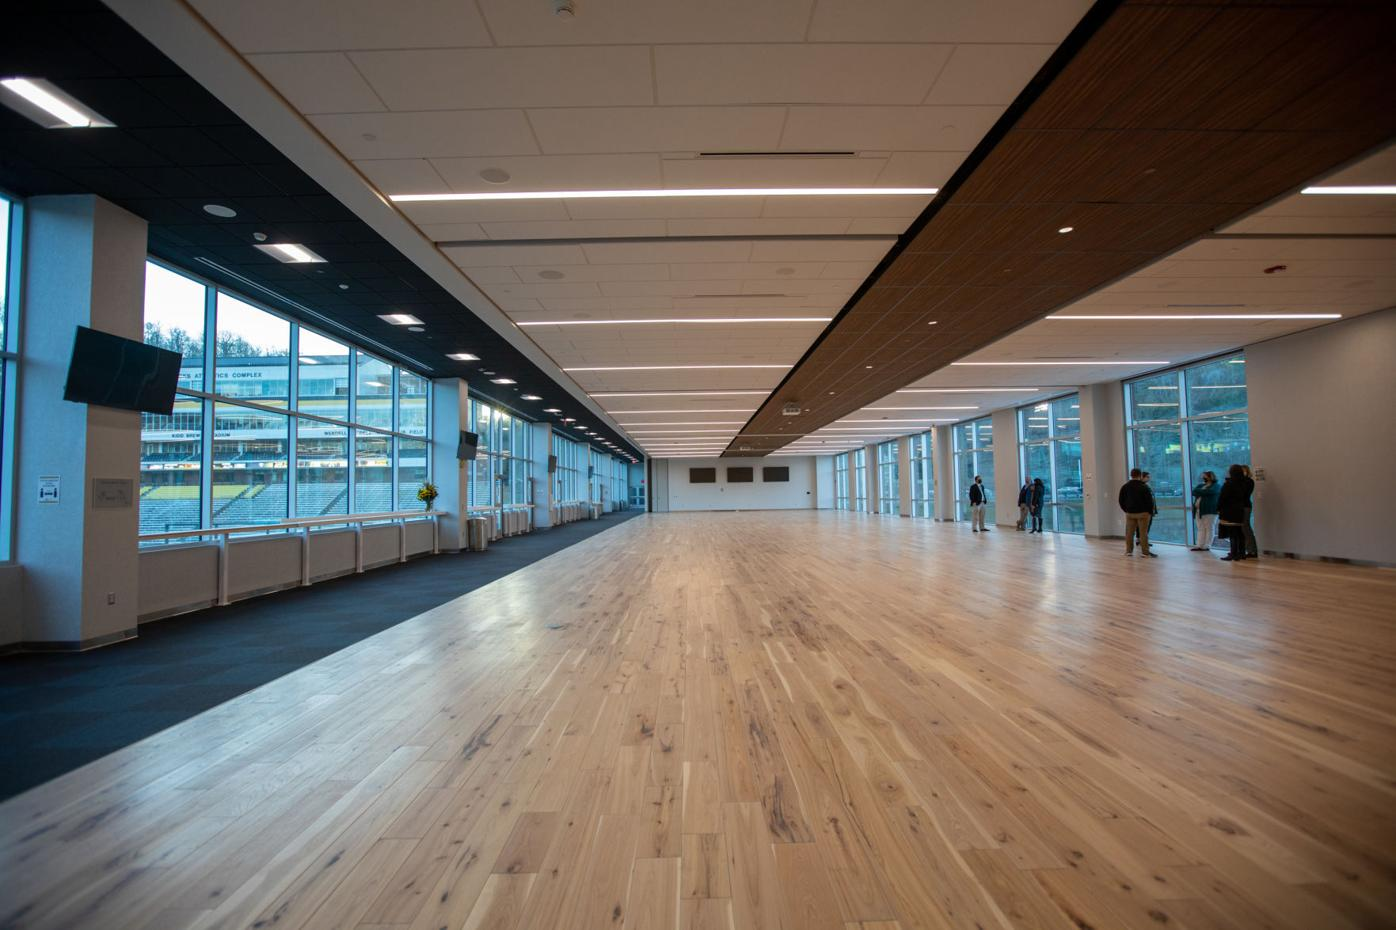 End zone project ballroom